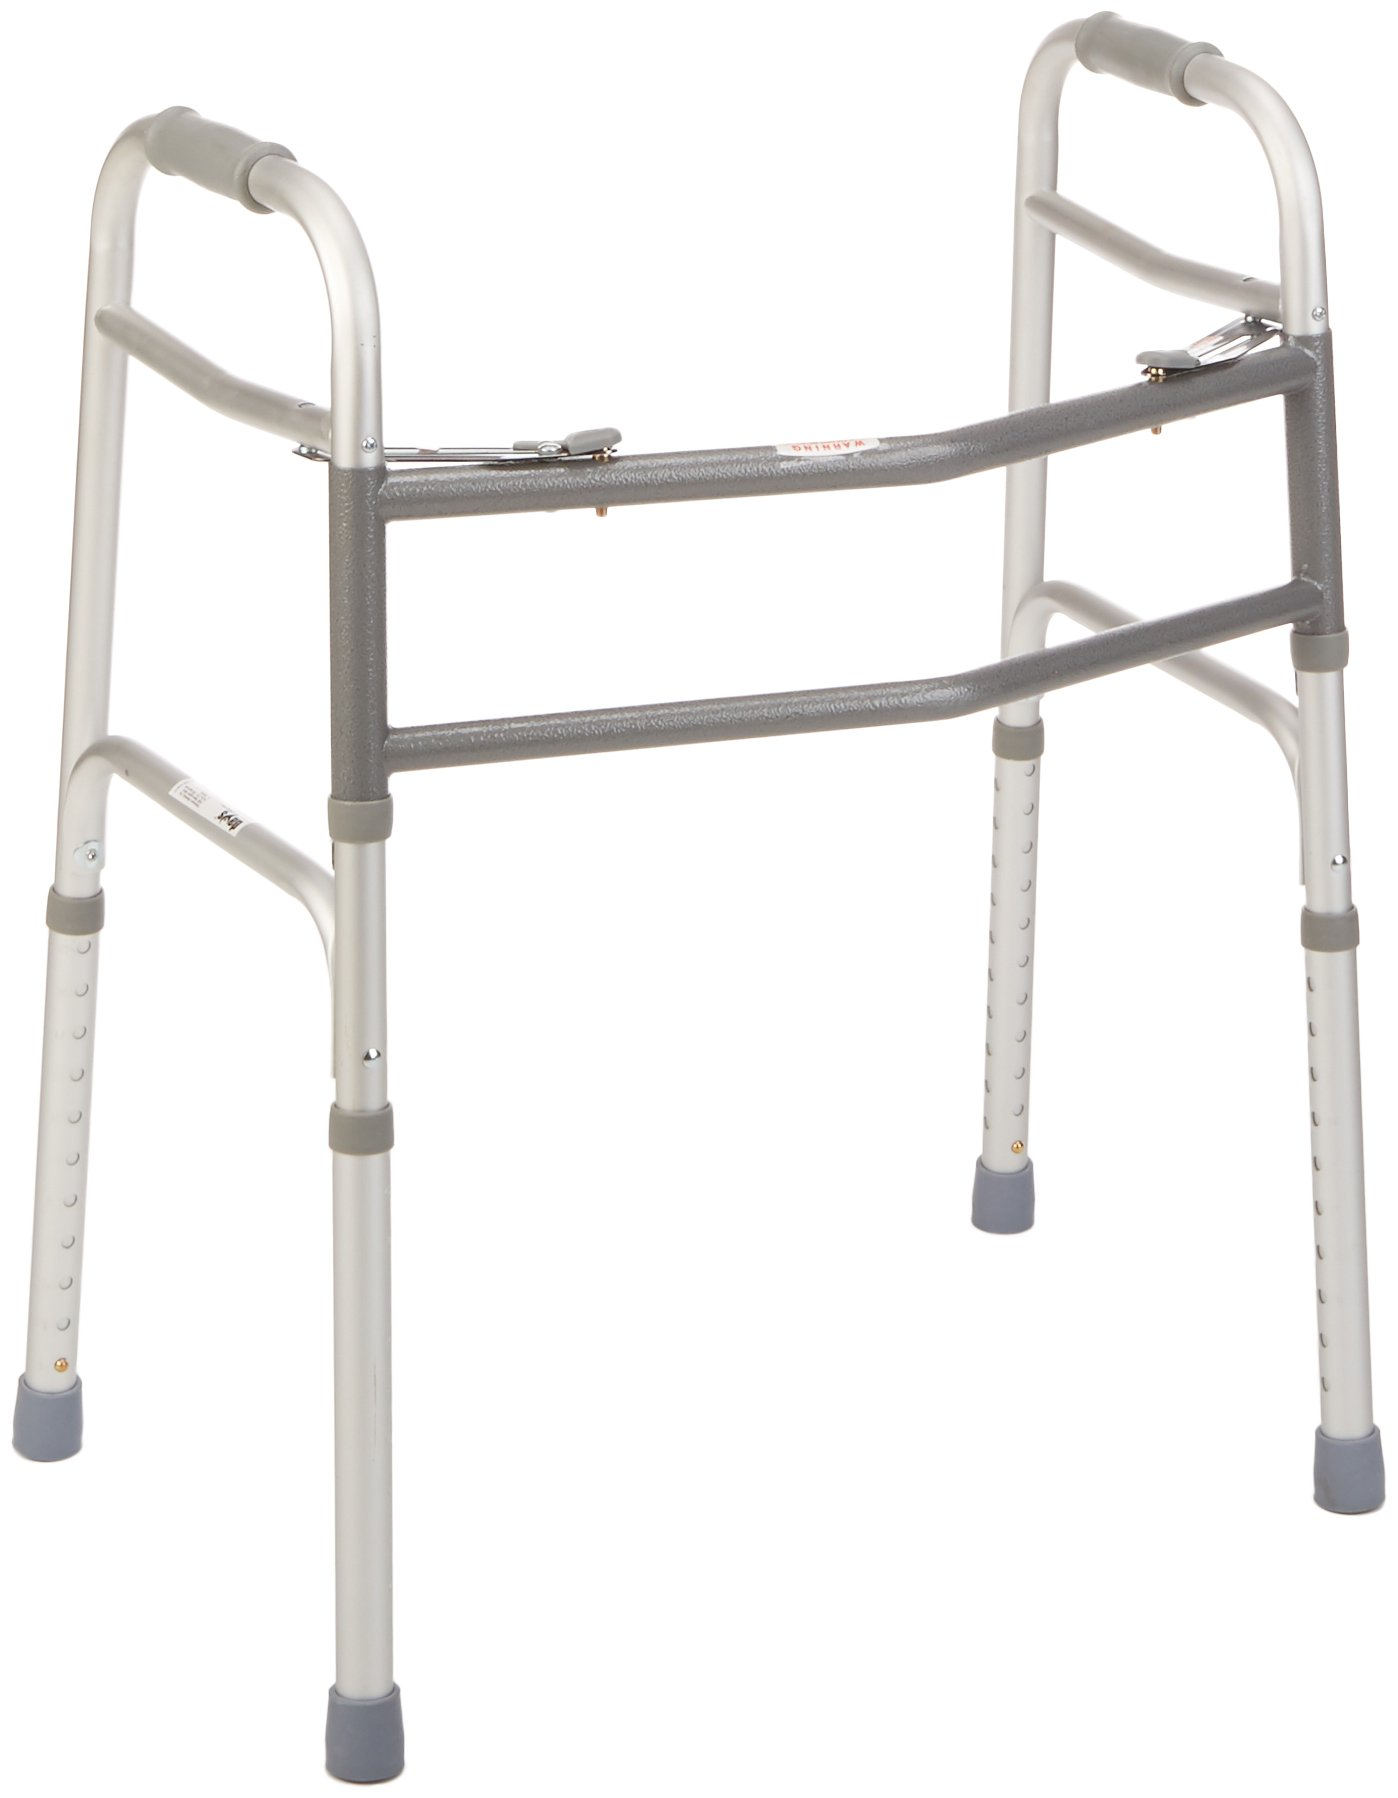 Days Bariatric Walker for Elderly and Handicapped, Extra Wide Adjustable Walker with Heavy Duty Support and Dual Release Locking, Mobility Assistance for Tall and Large Individuals by S-Day